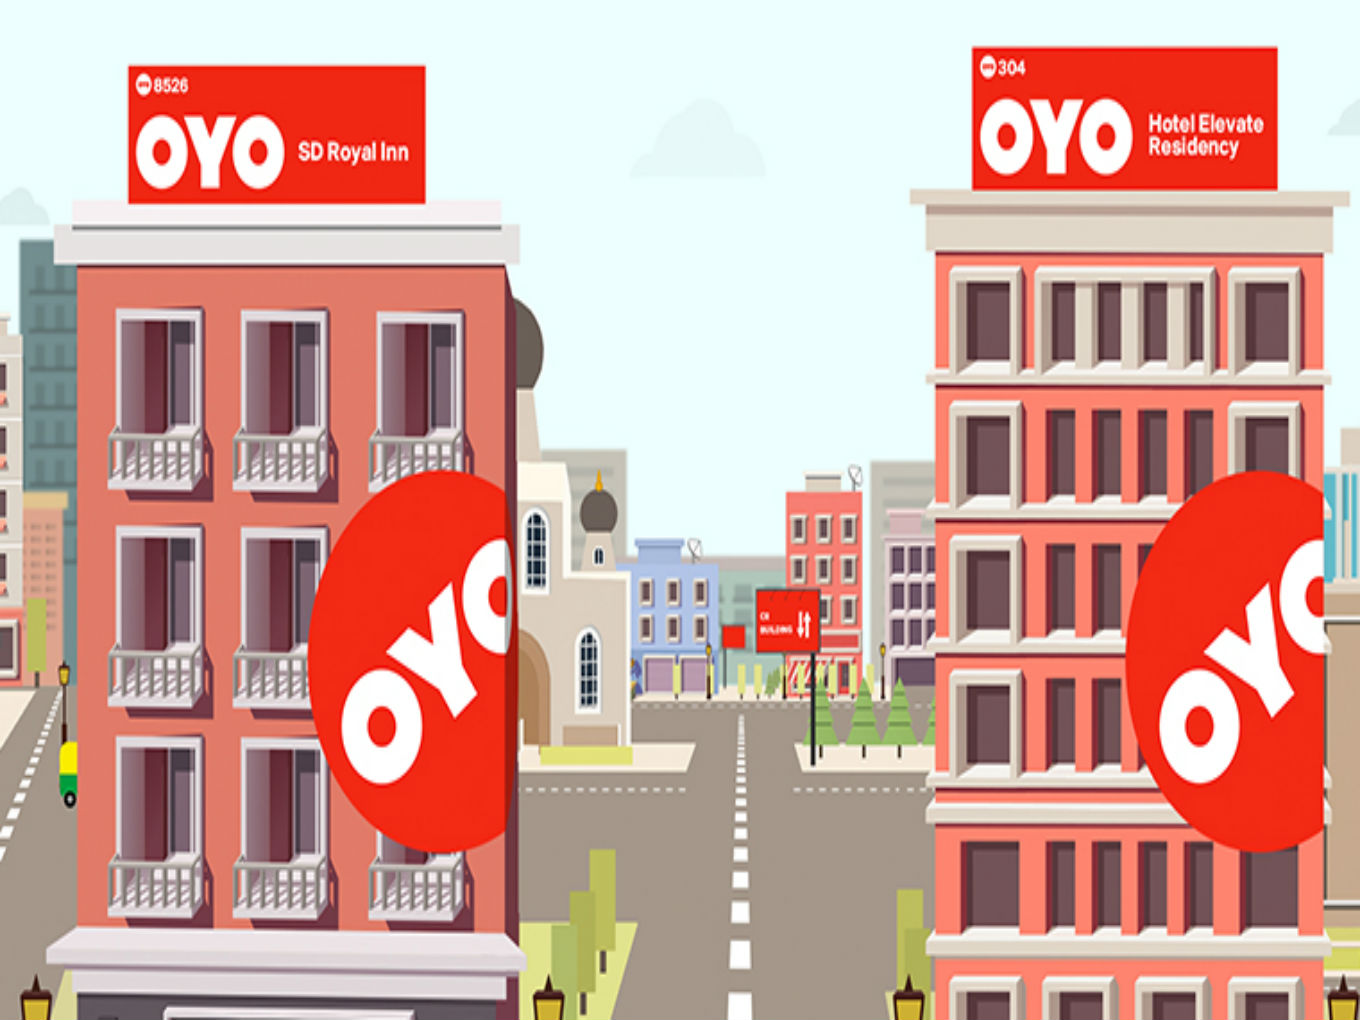 After China Hotel Chain Oyo Expands Operations To The Uk